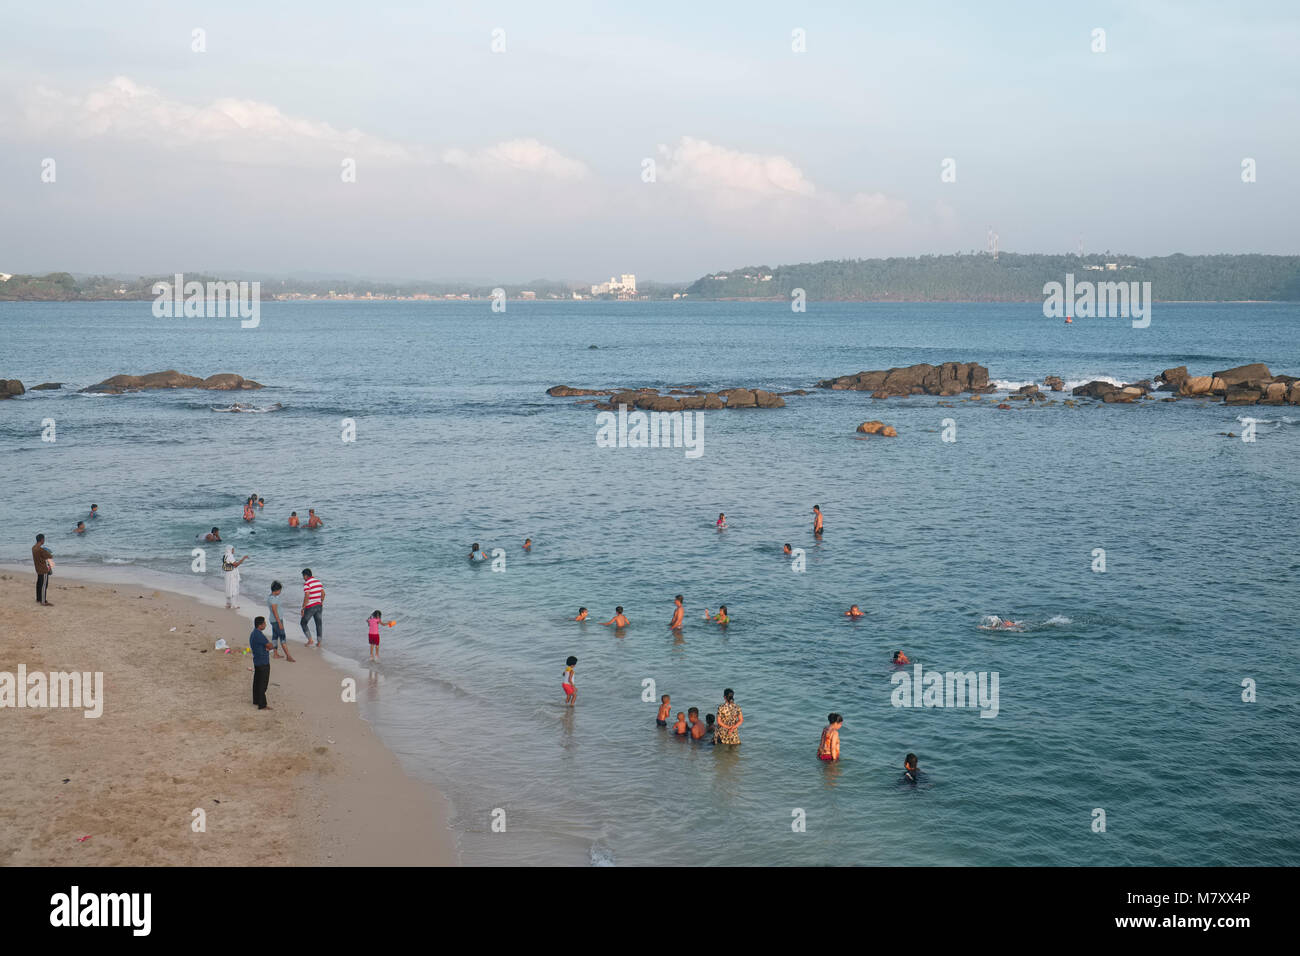 People swim in the ocean at the beach at Point Utrecht Bastion in Galle Fort in Sri Lanka - Stock Image